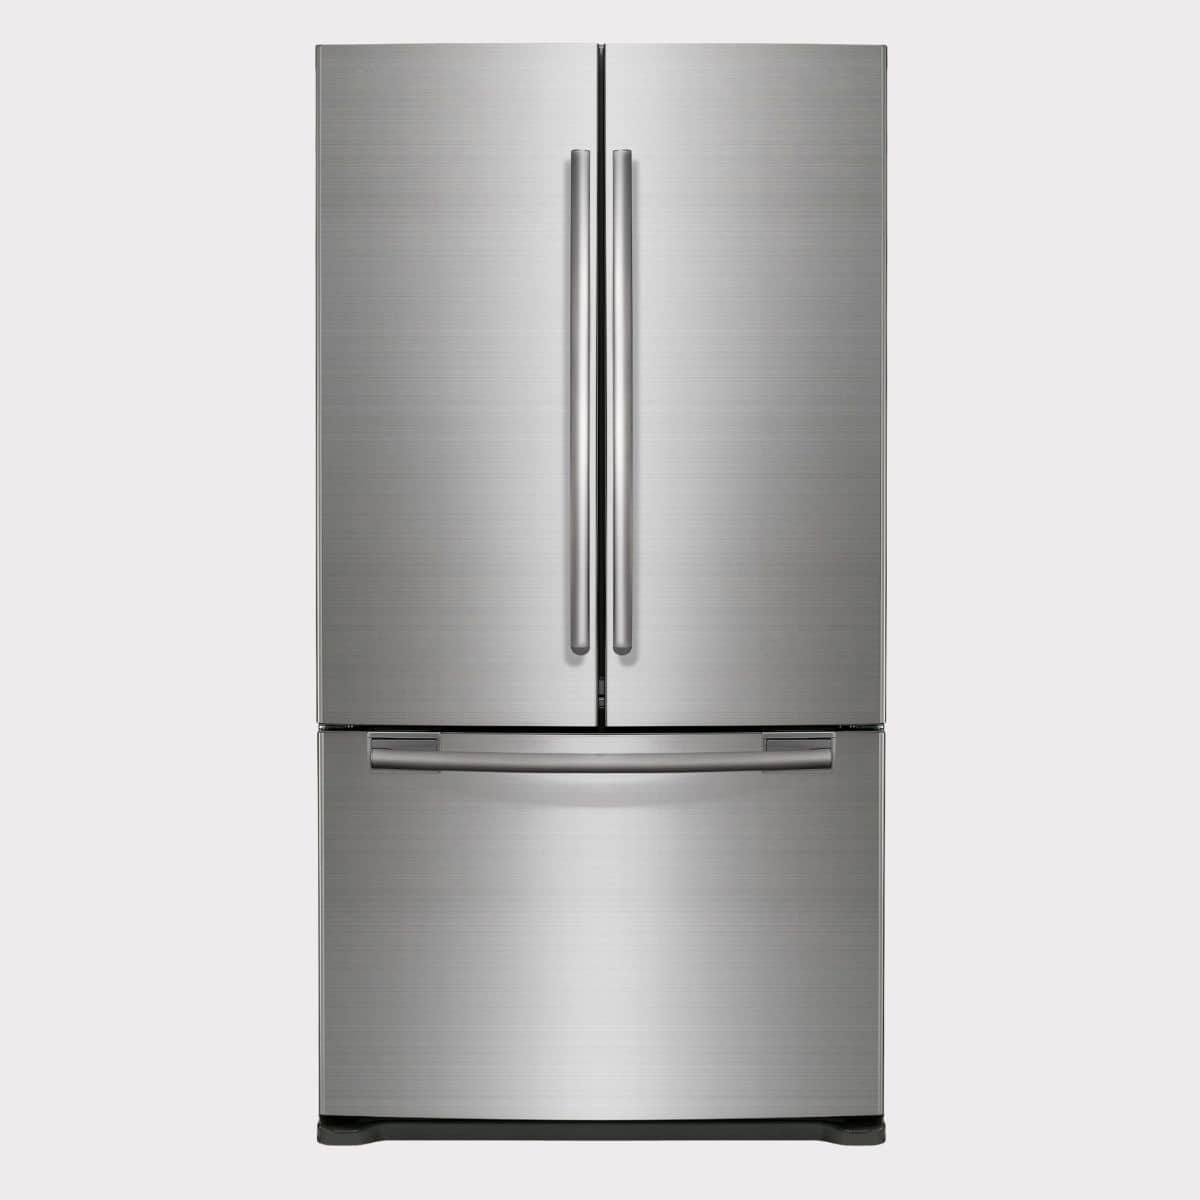 image of a stainless steel refrigerator/freezer